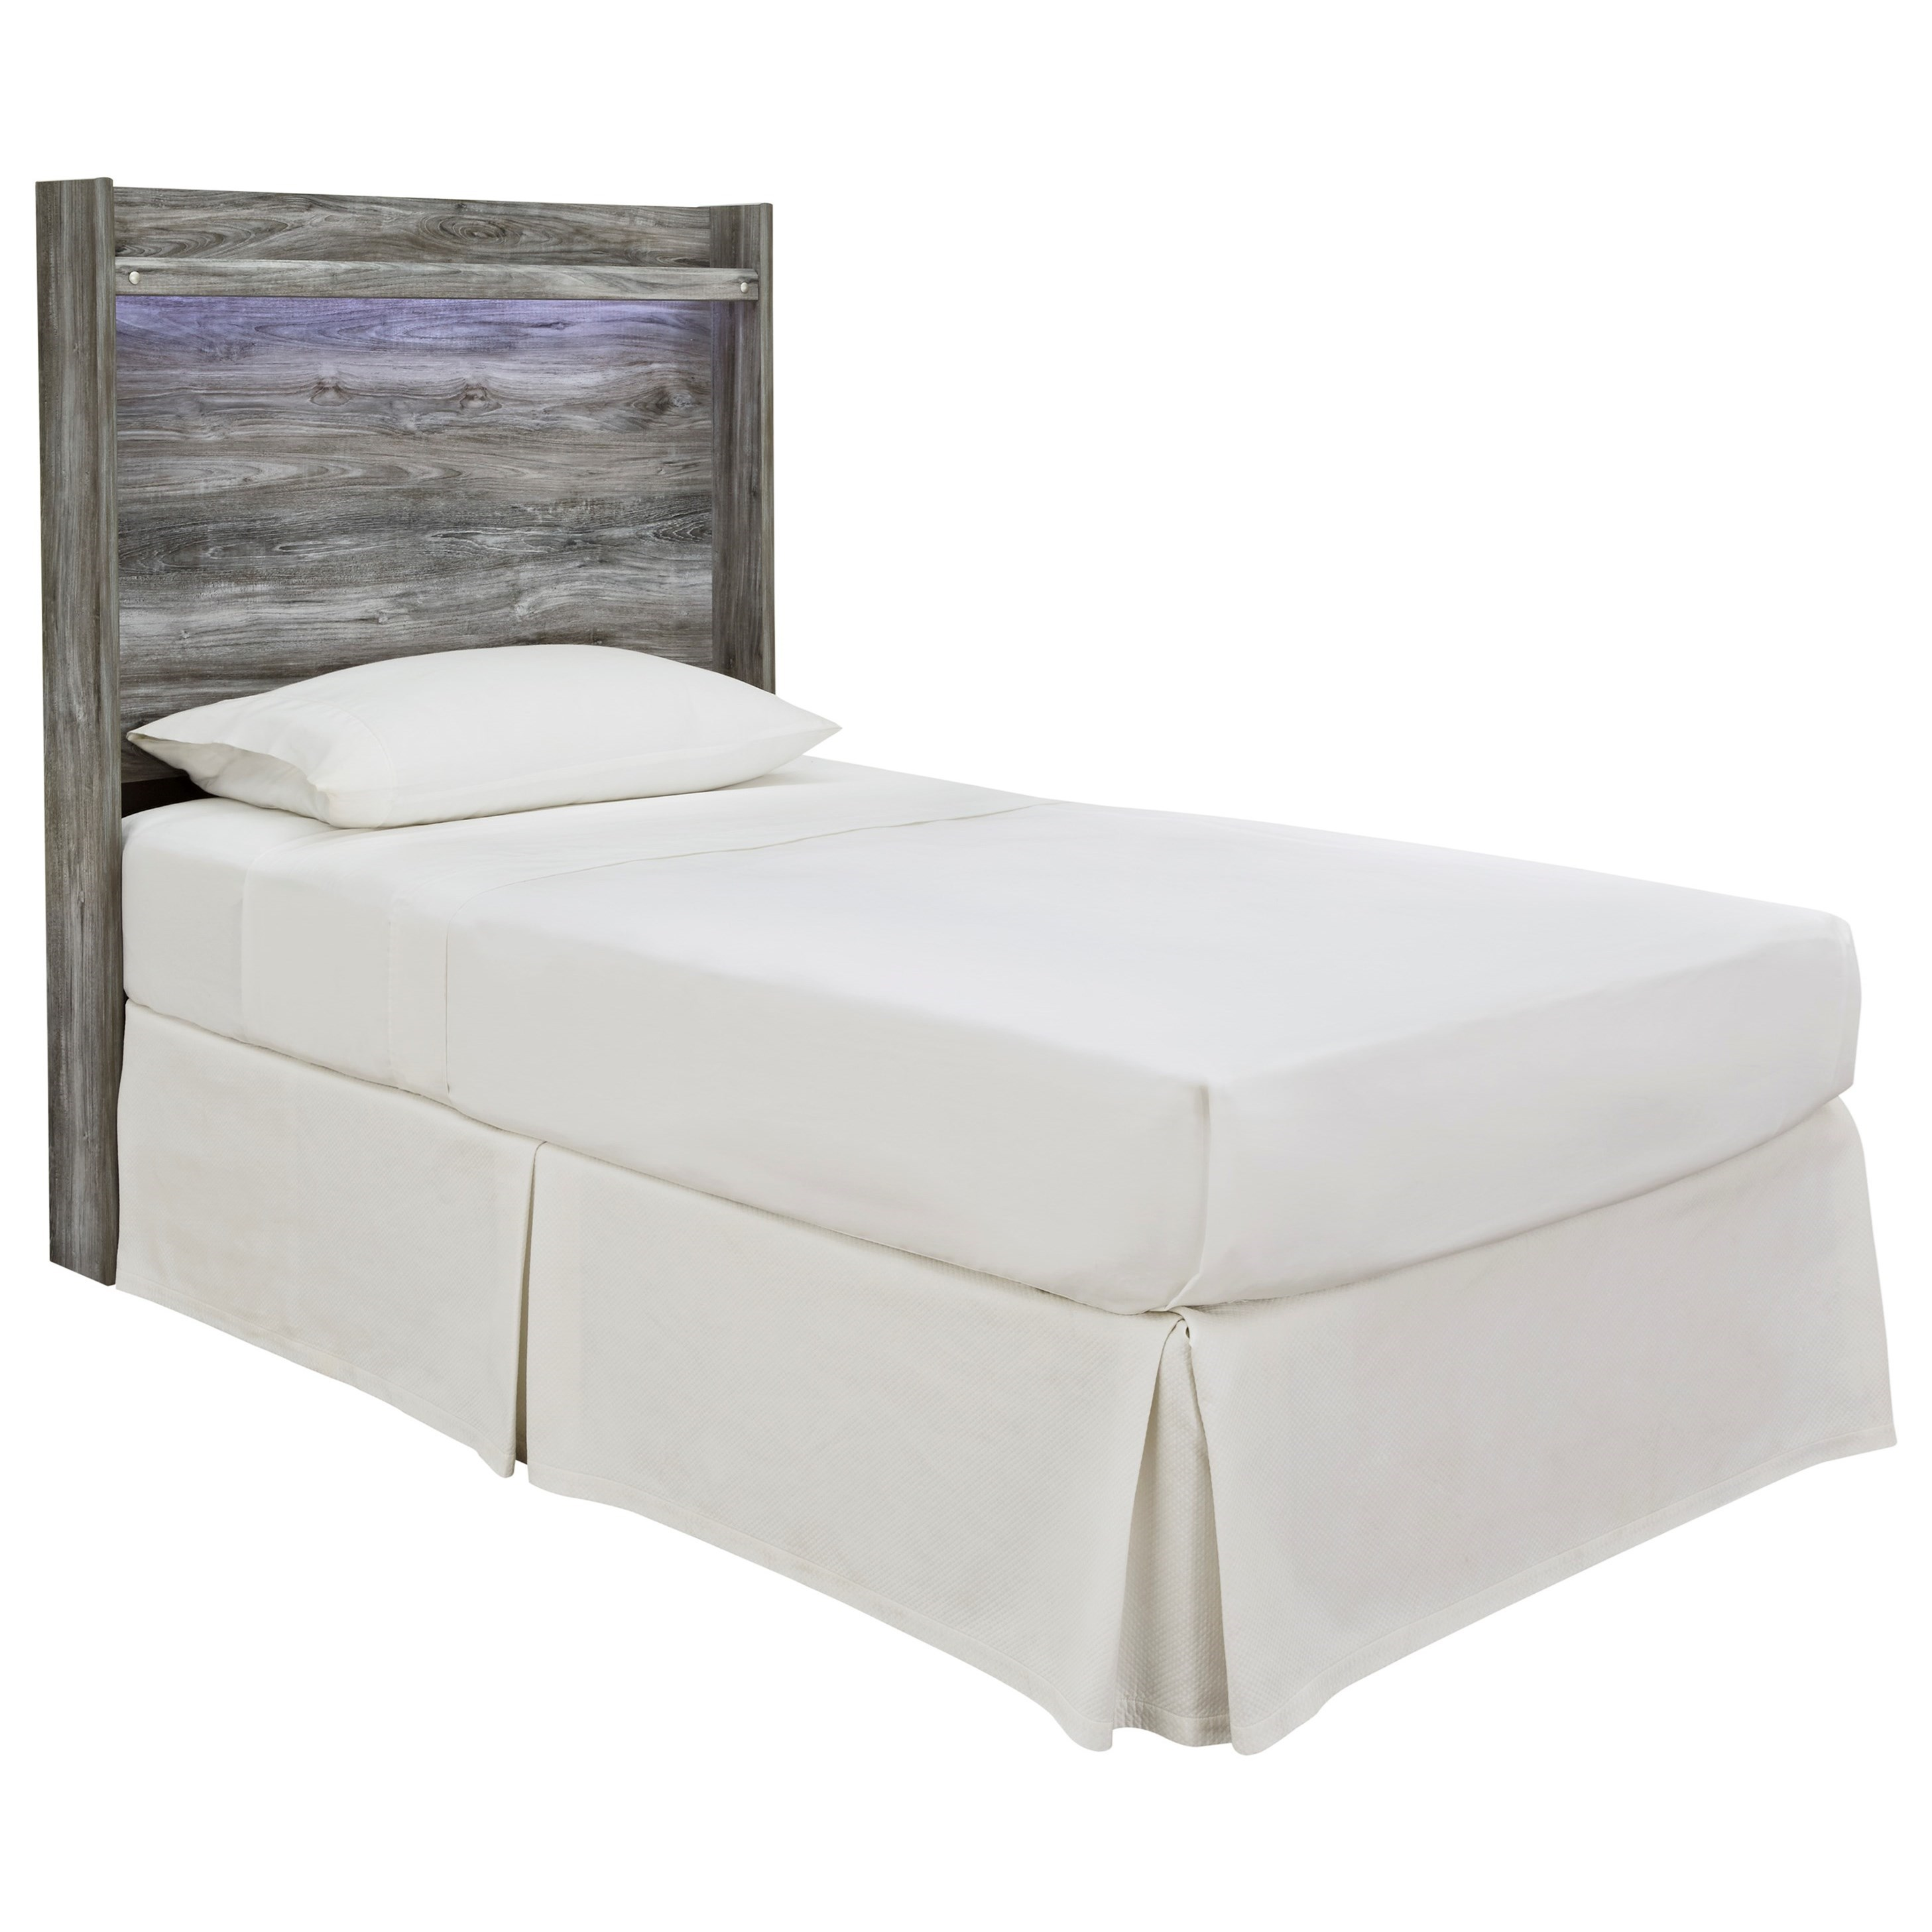 Baystorm Twin Panel Headboard by Signature Design by Ashley at Northeast Factory Direct